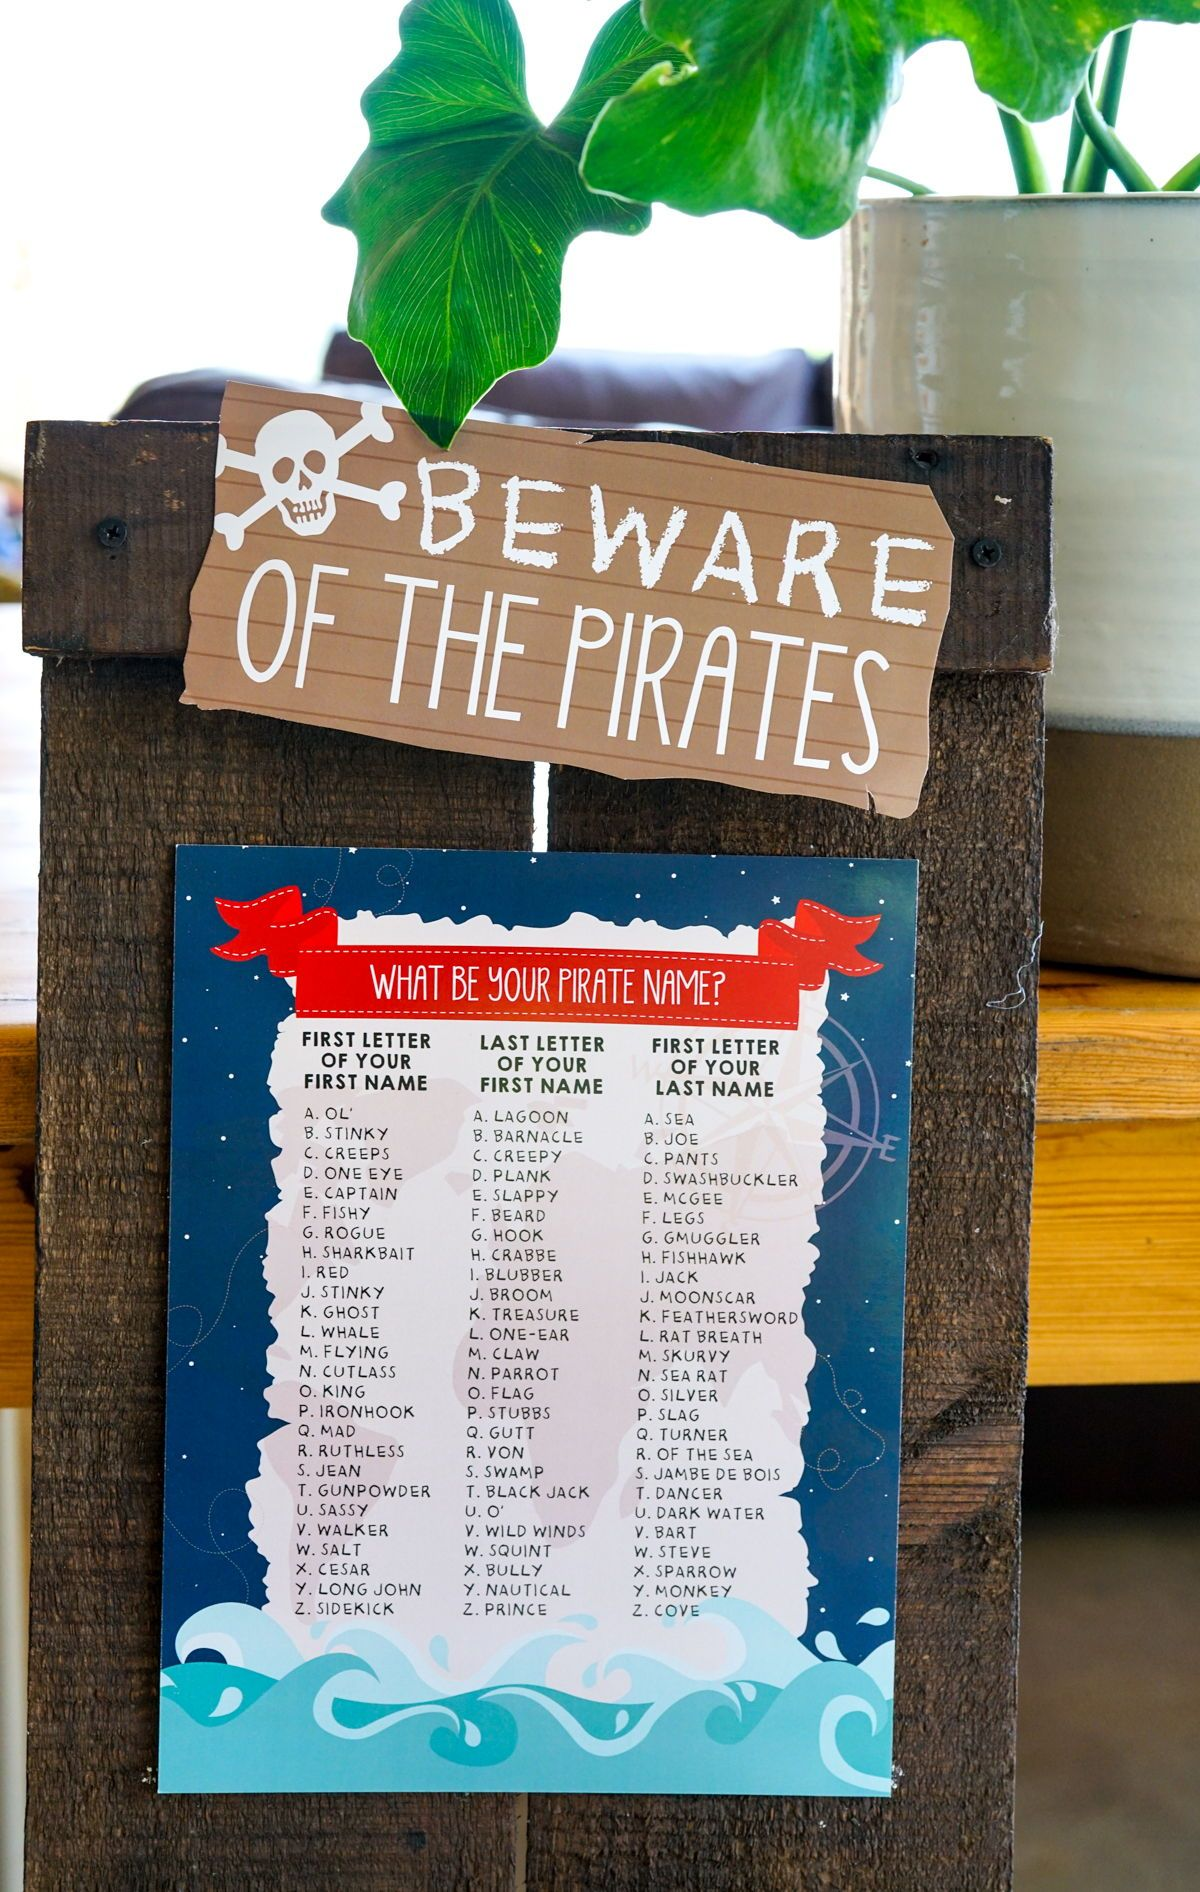 Pirate Party Printable Game Pick Your Pirate Name Poster Pirate Party Activity Game Pirate Names Pirate Birthday Party Pirate Party